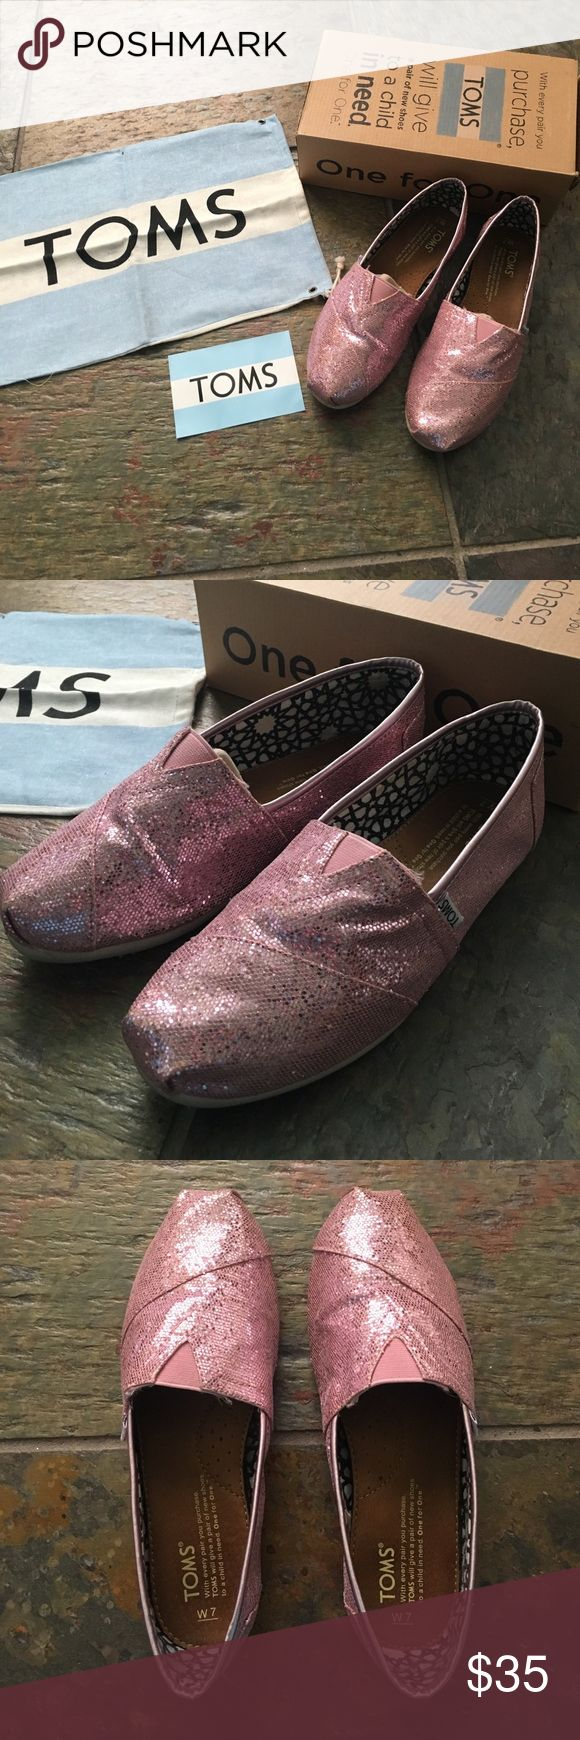 TOMS classics slip-on pink glitter shoe Women's size 7. Gently worn. Great condition. Comes with the box, TOMS bag, and sticker. TOMS Shoes Flats & Loafers